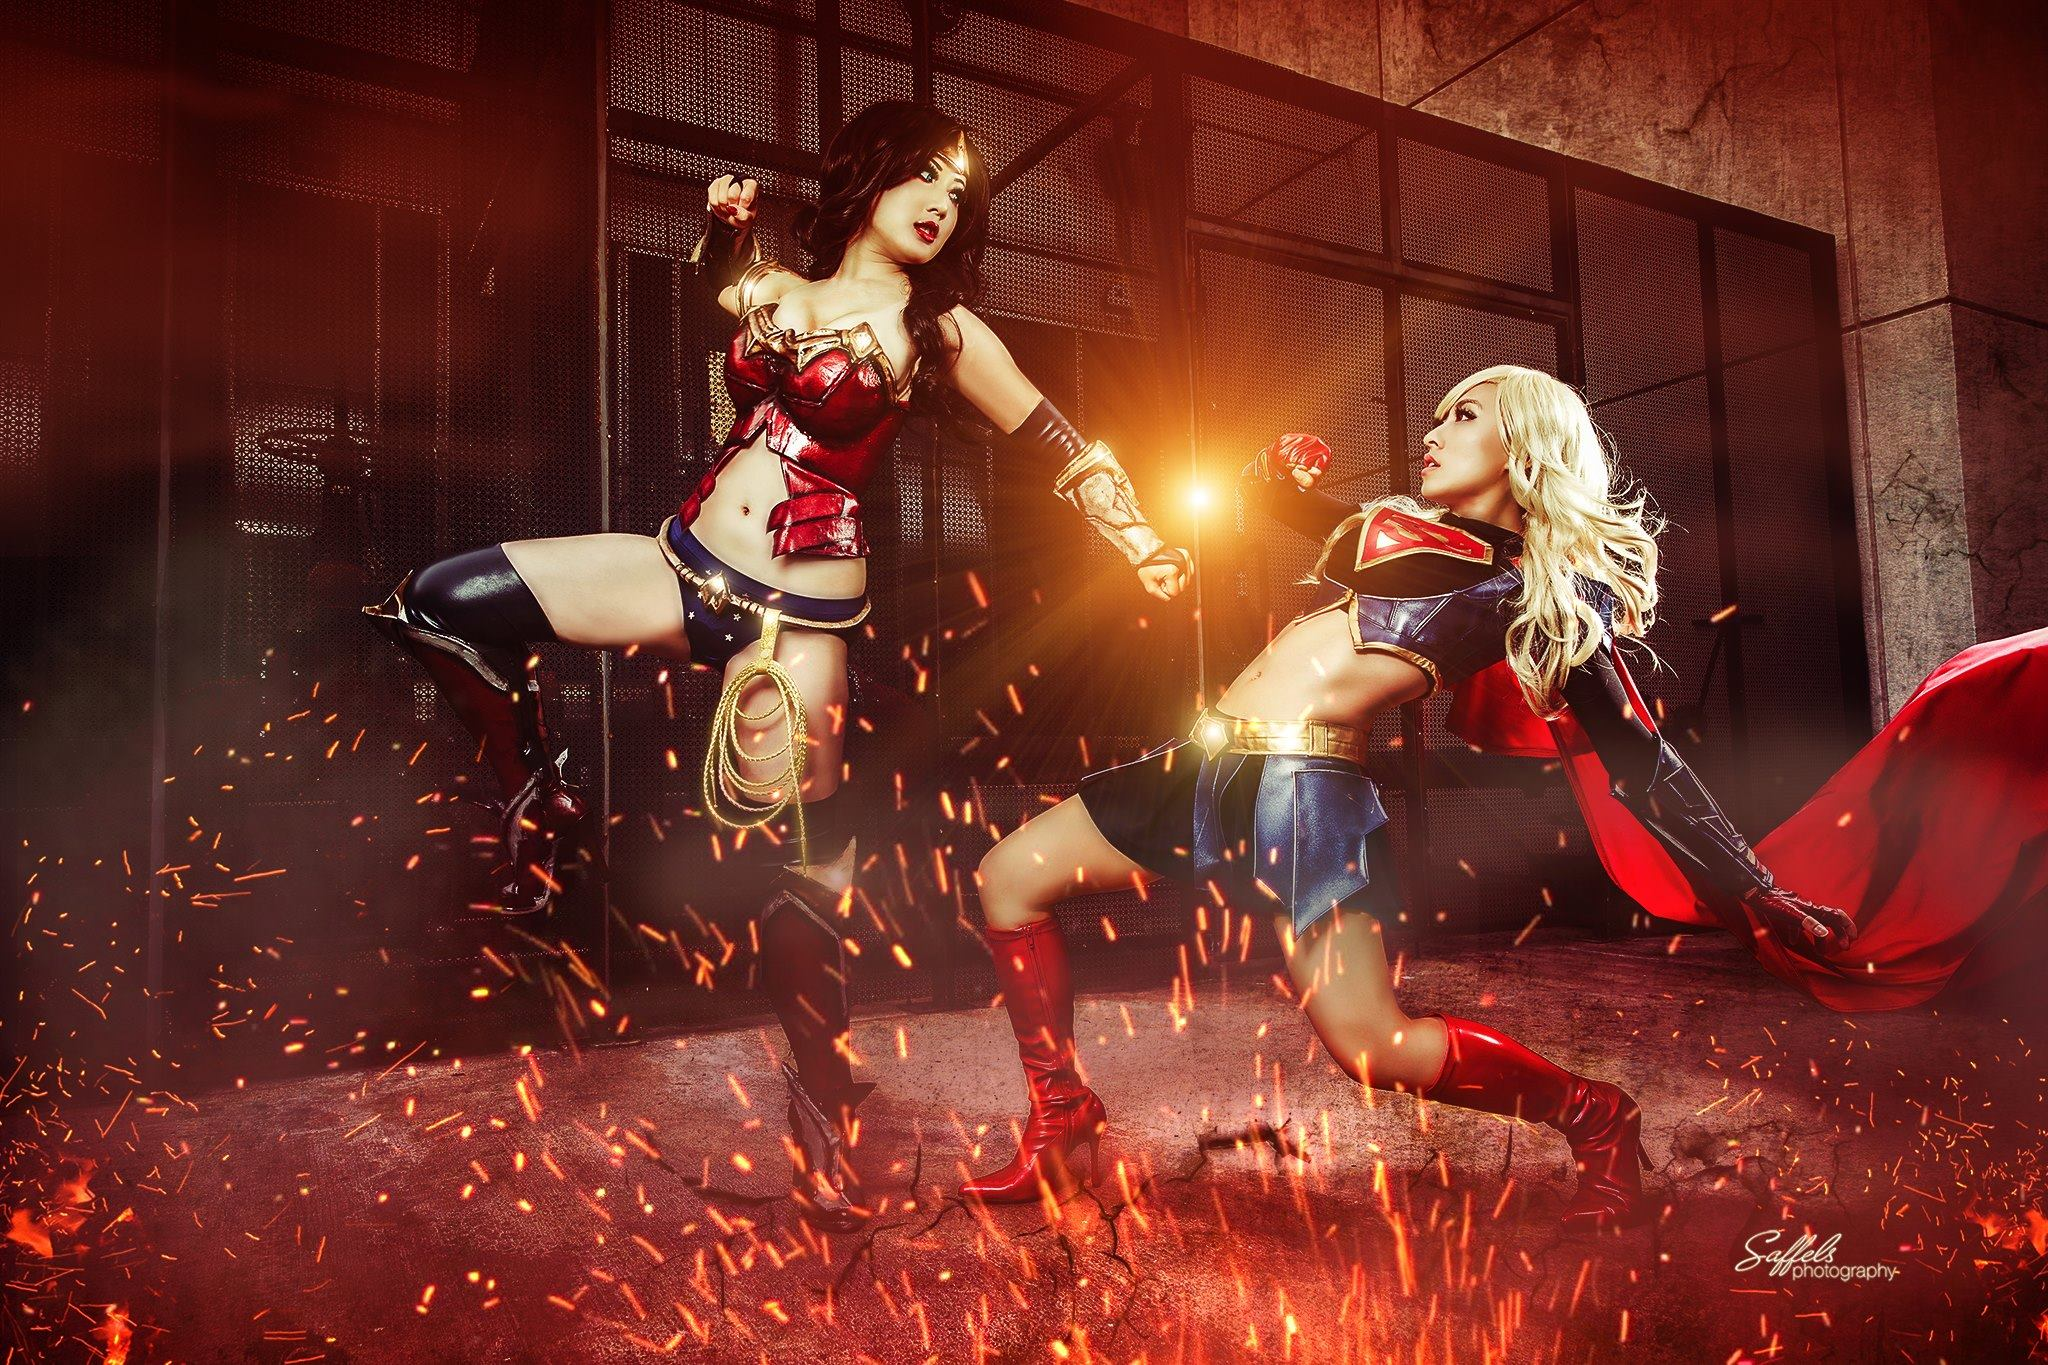 Cosplay 20 – Saffels Photography